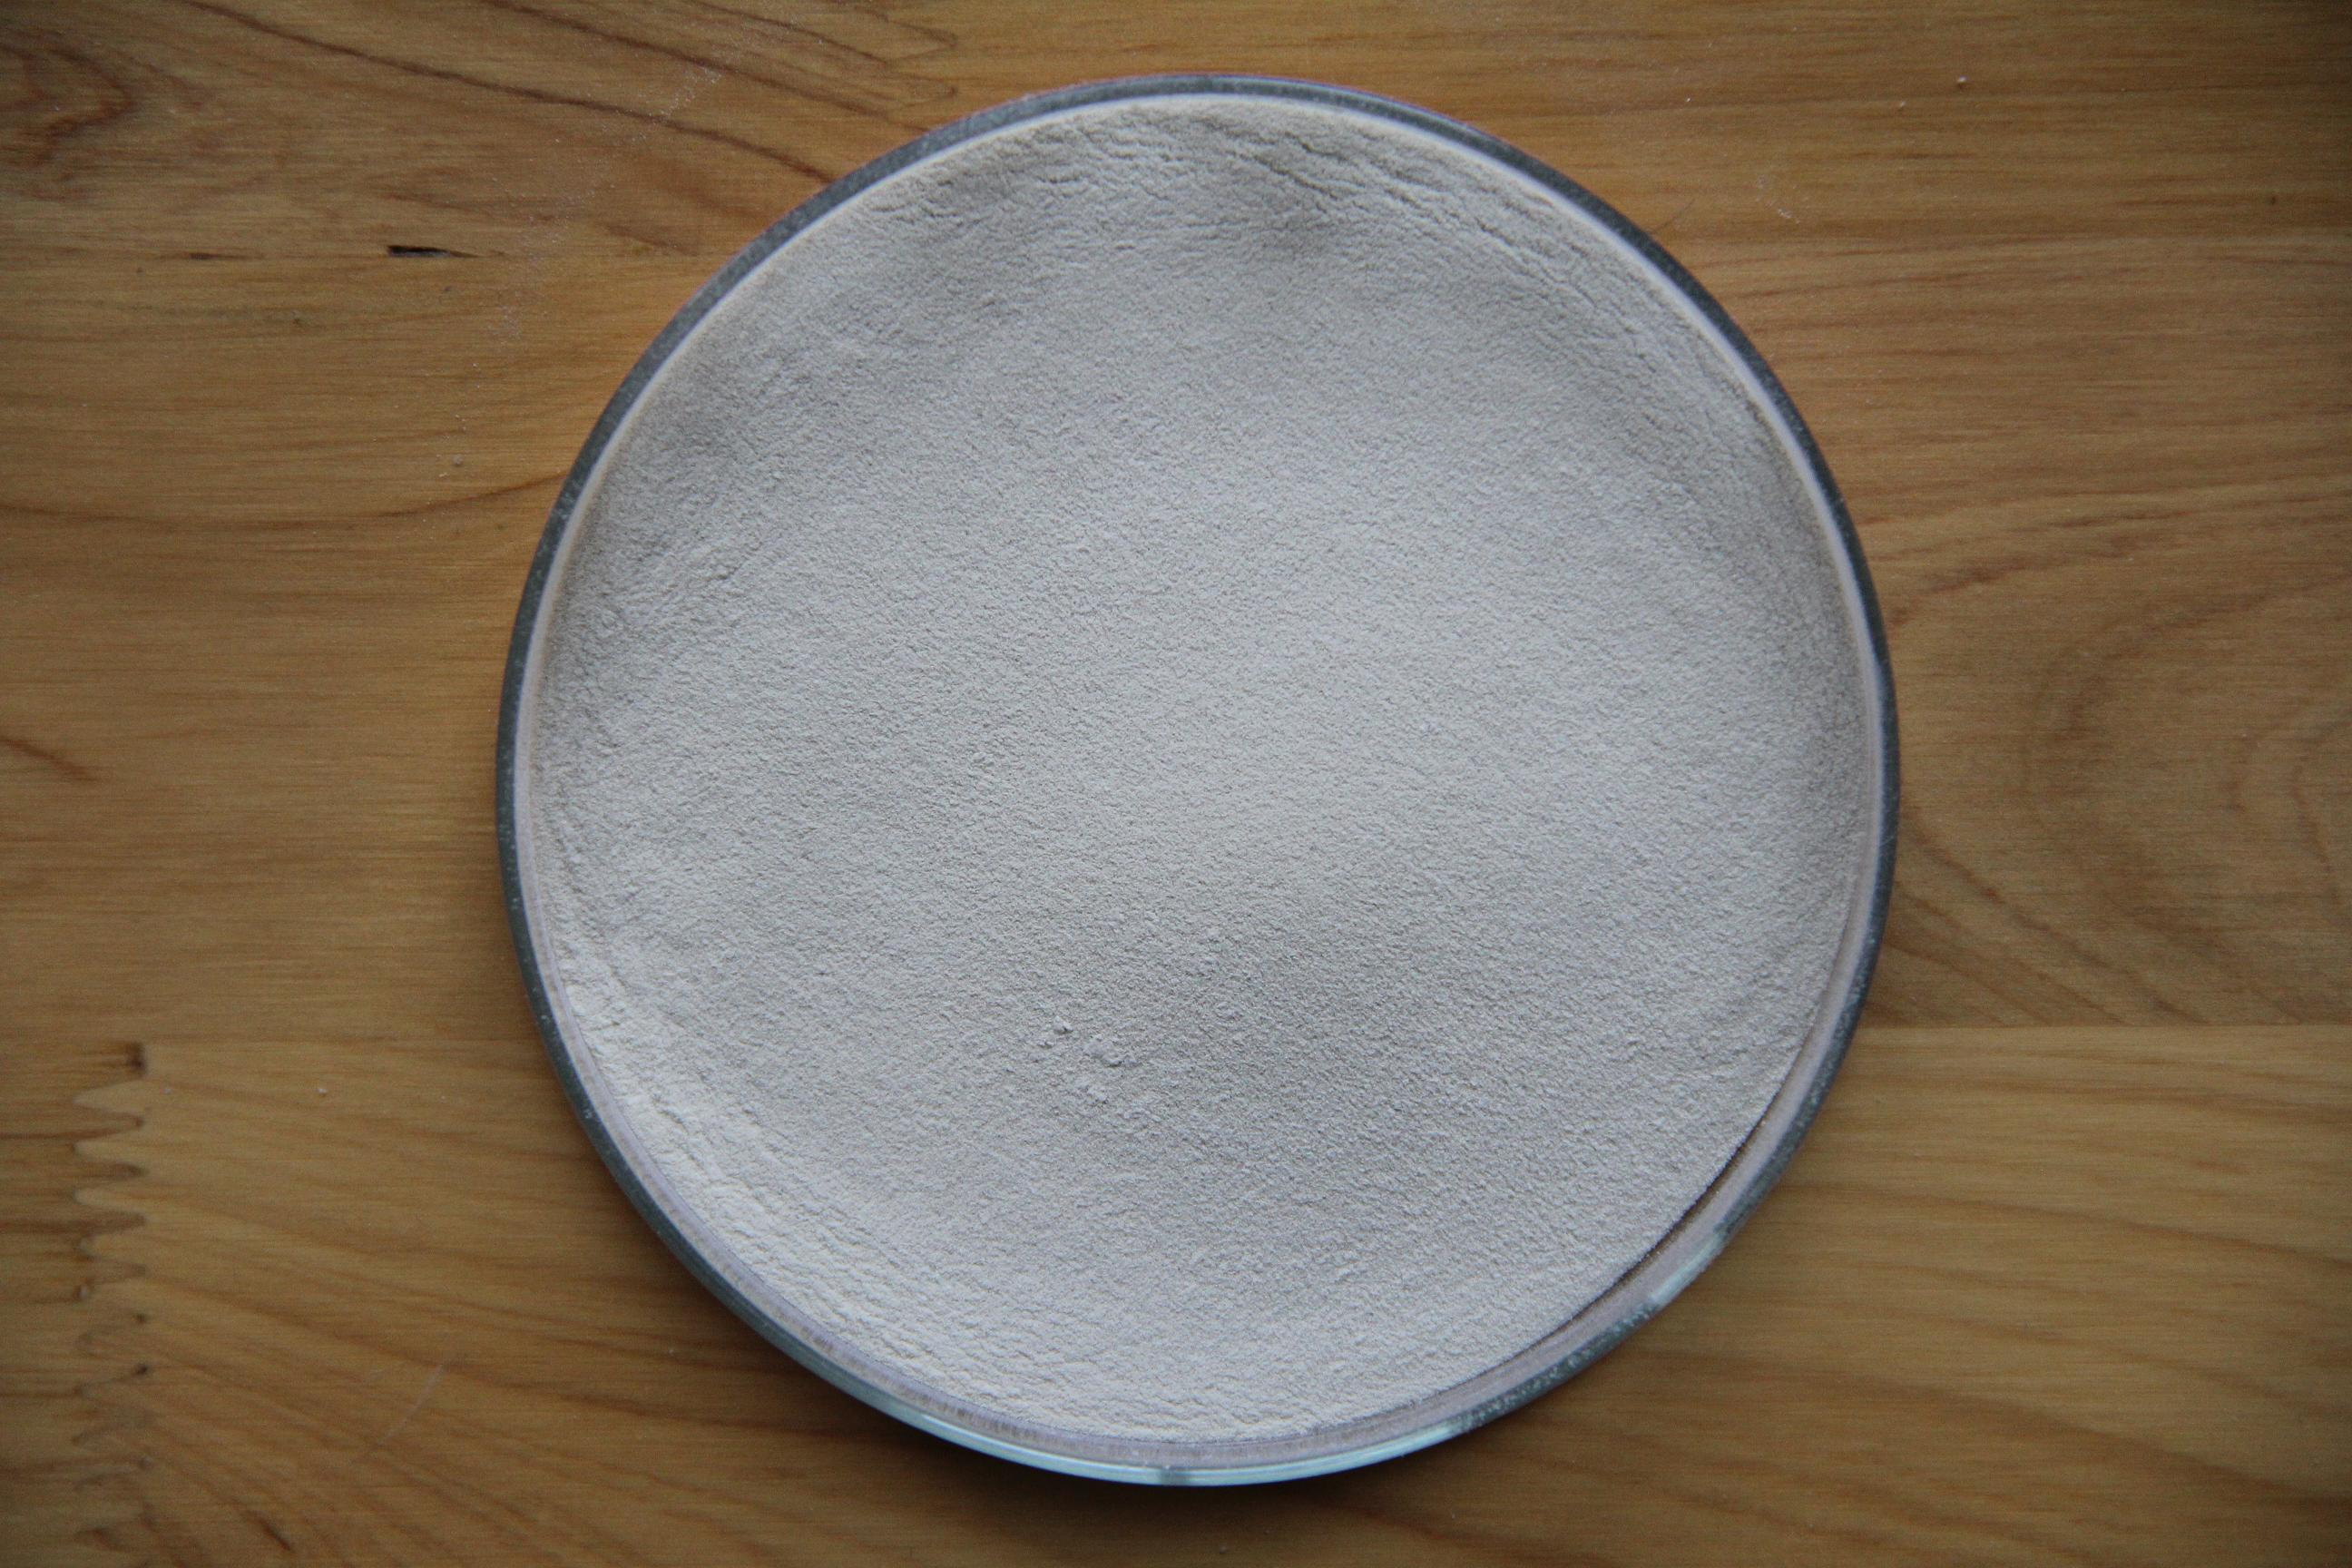 Amino Acid Powder For Feed Additives